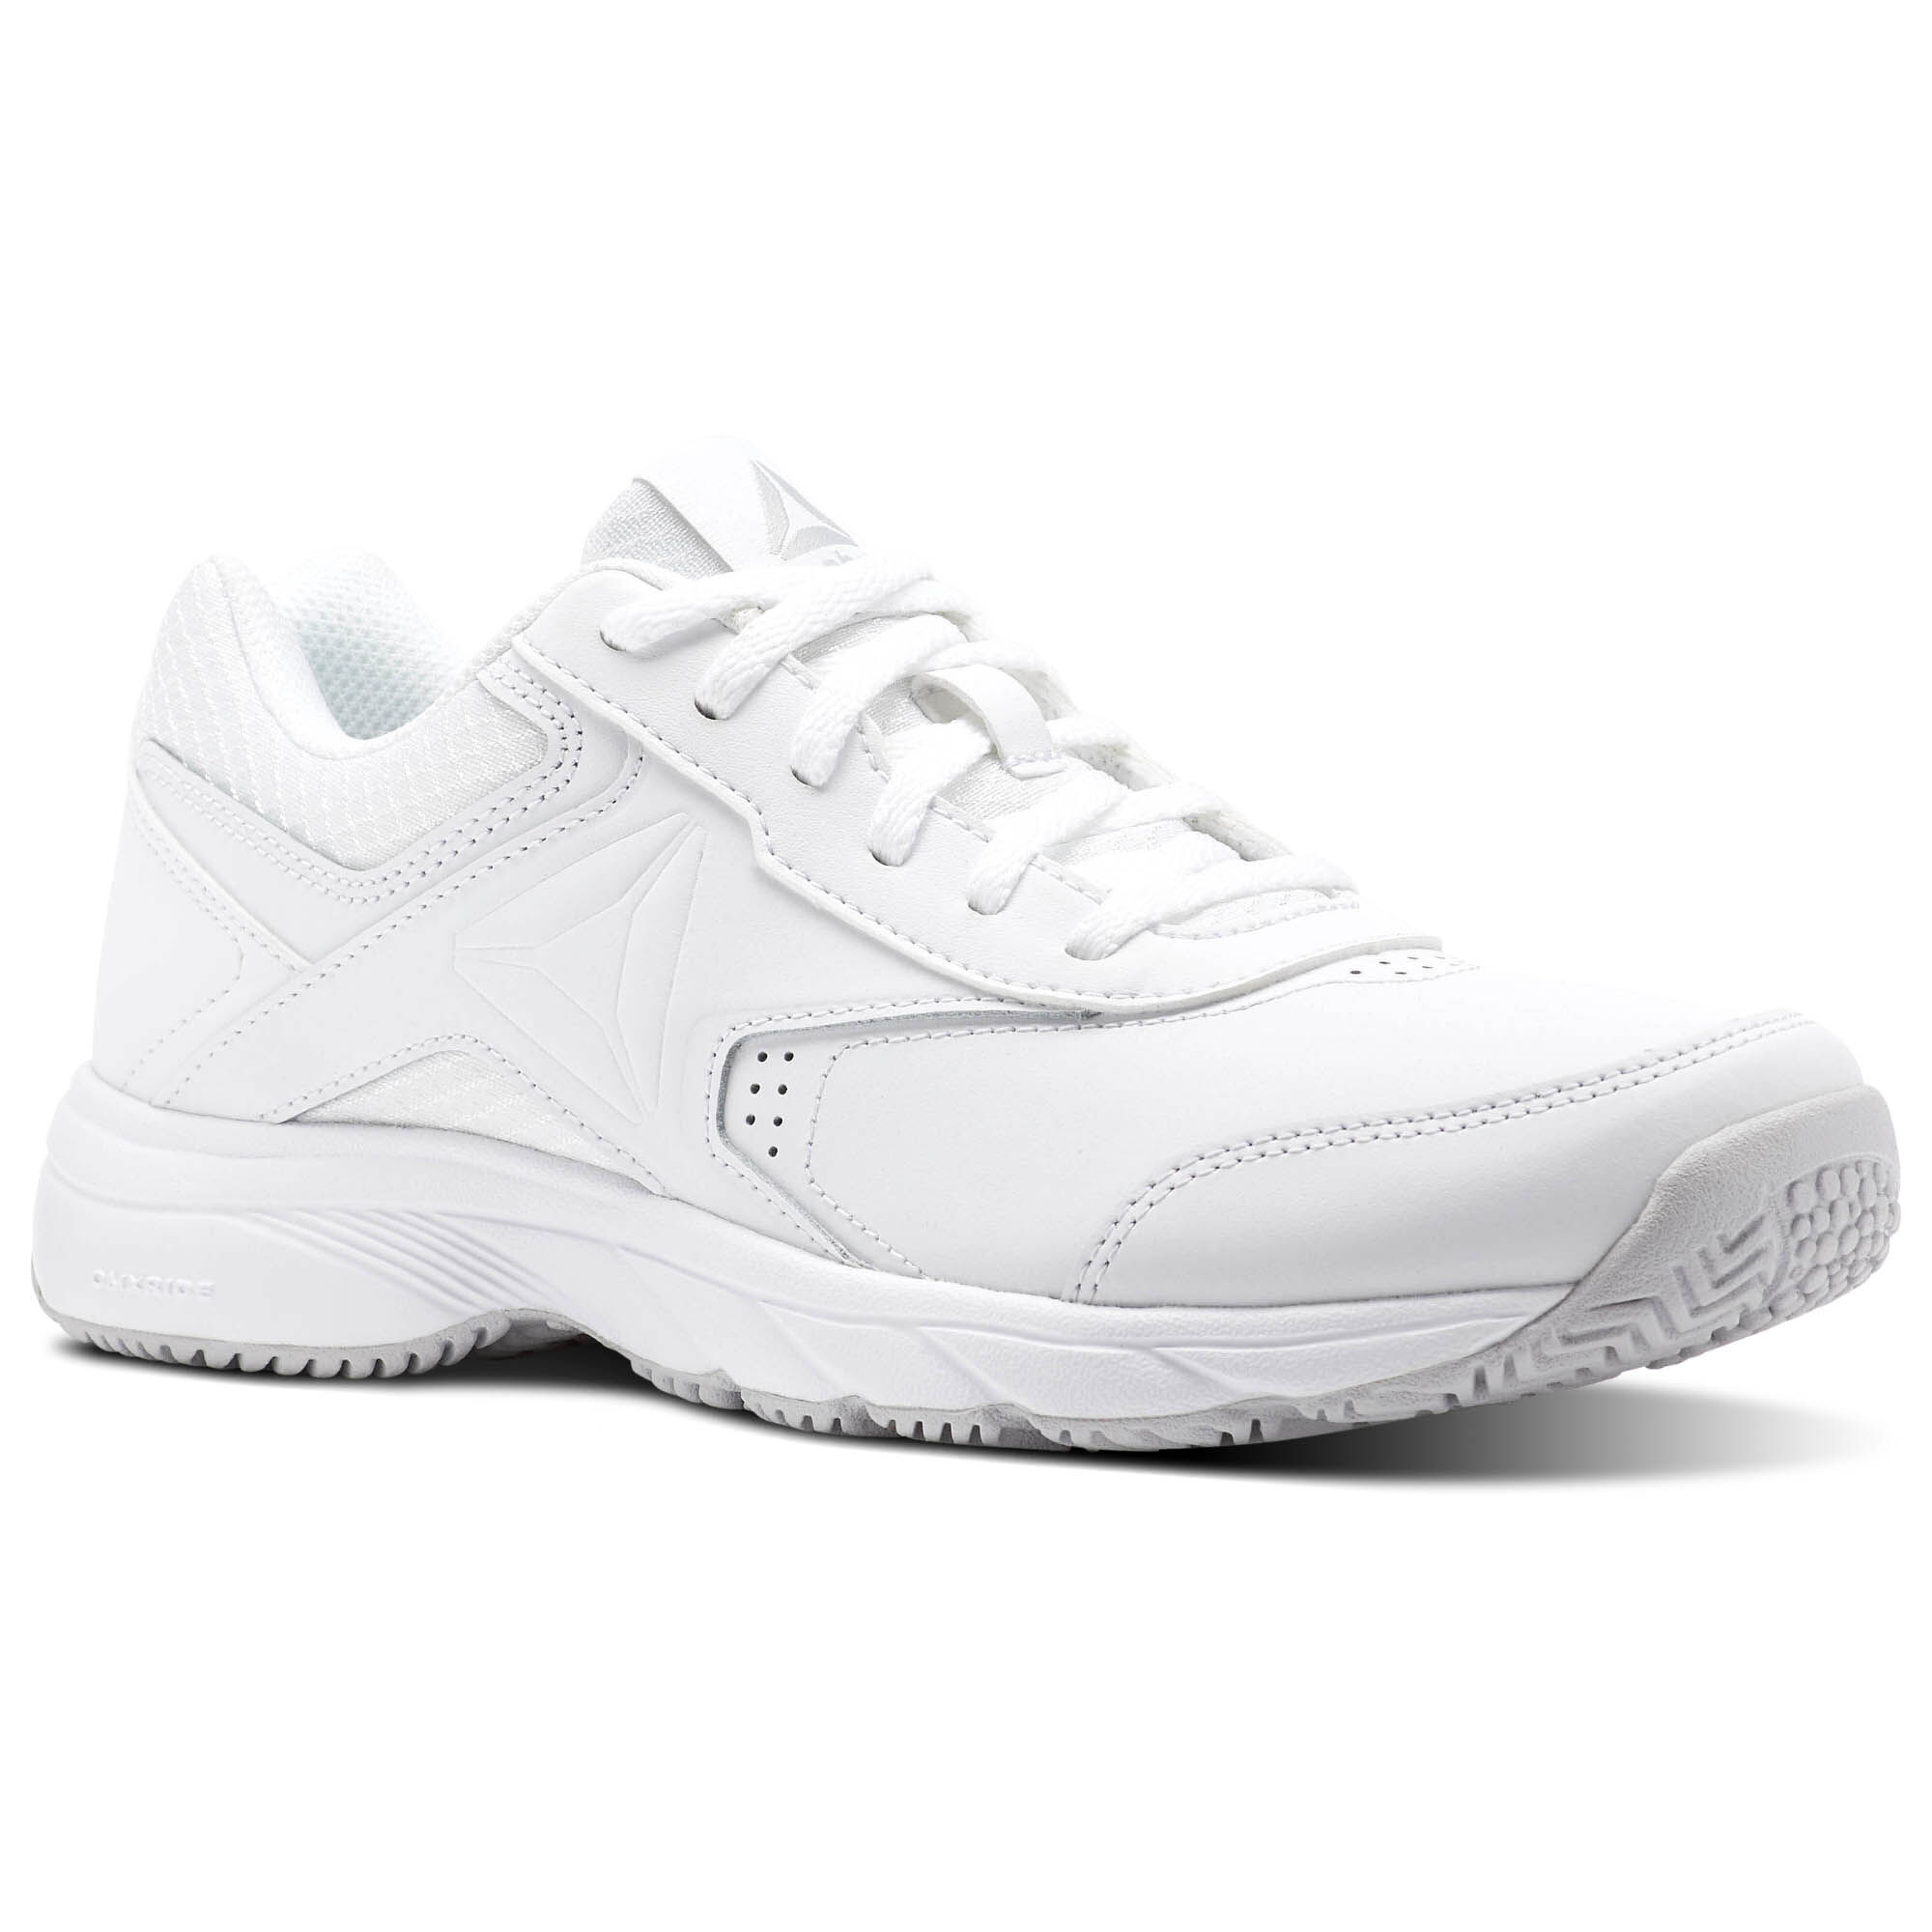 Reebok - Reebok Work N Cushion 3.0 White/Steel BS9525. Read all 25 reviews.  Women Walking